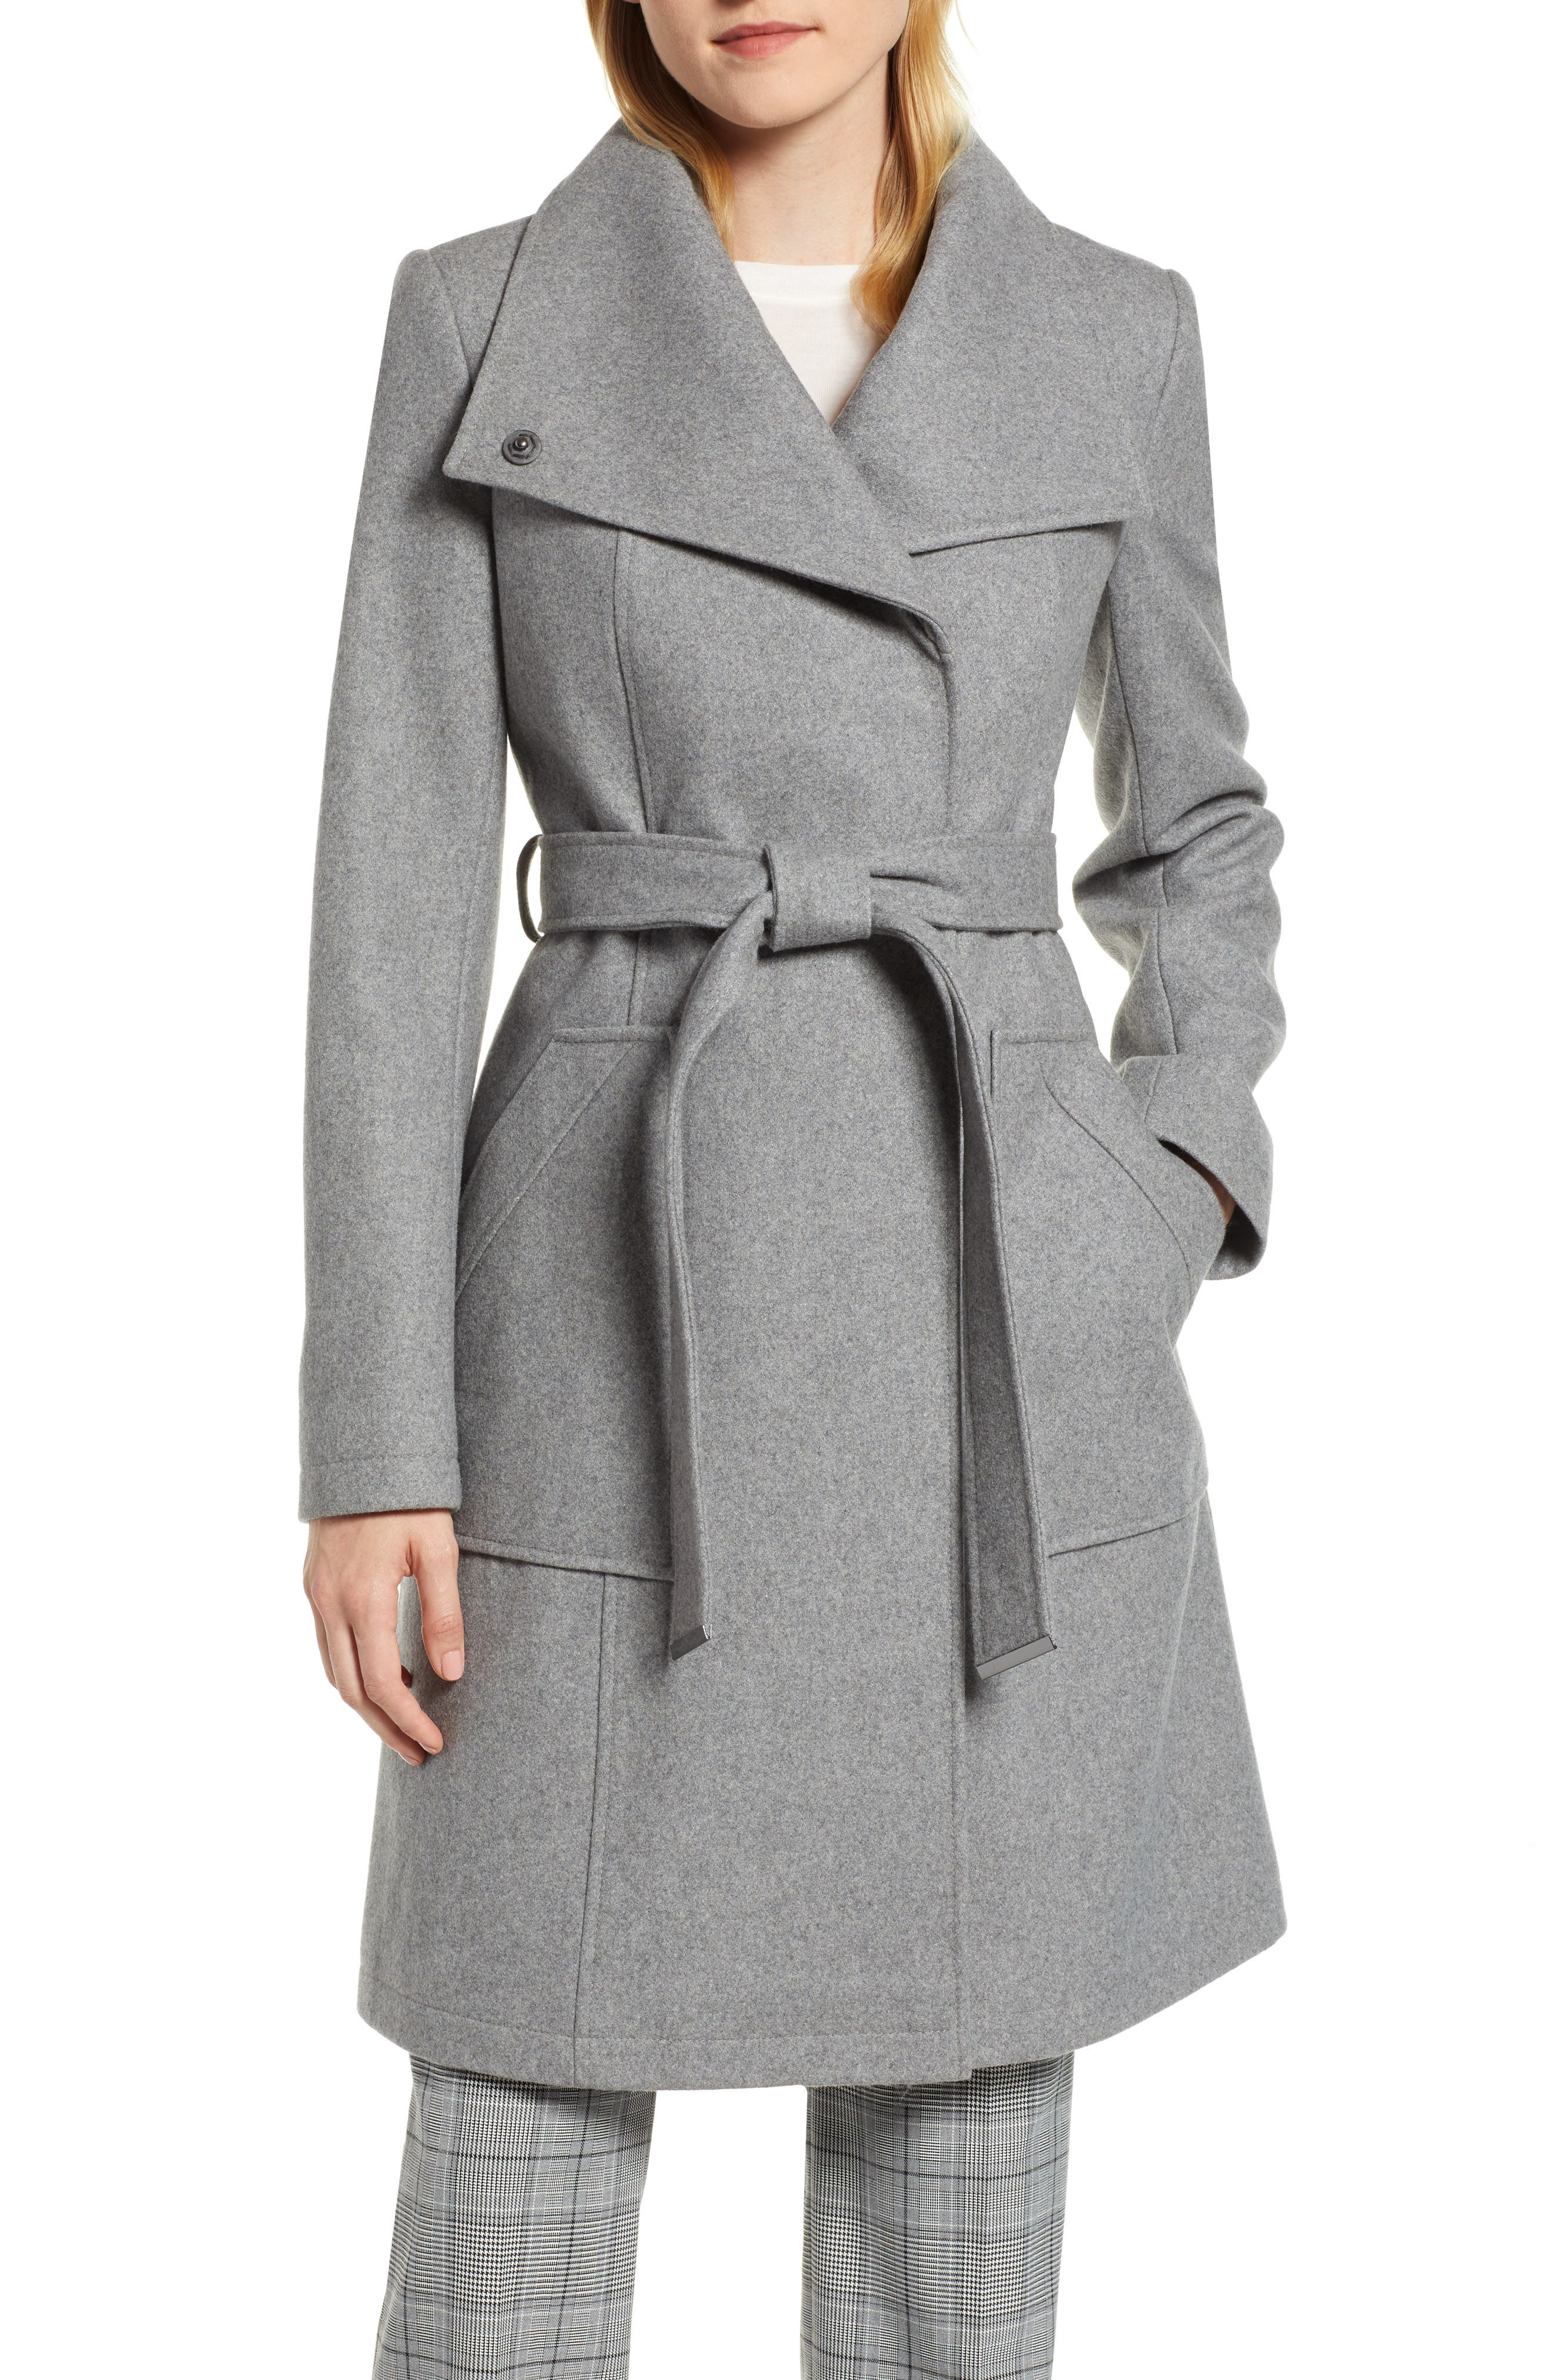 Belted Wool Blend Coat,                             Main thumbnail 1, color,                             GREY